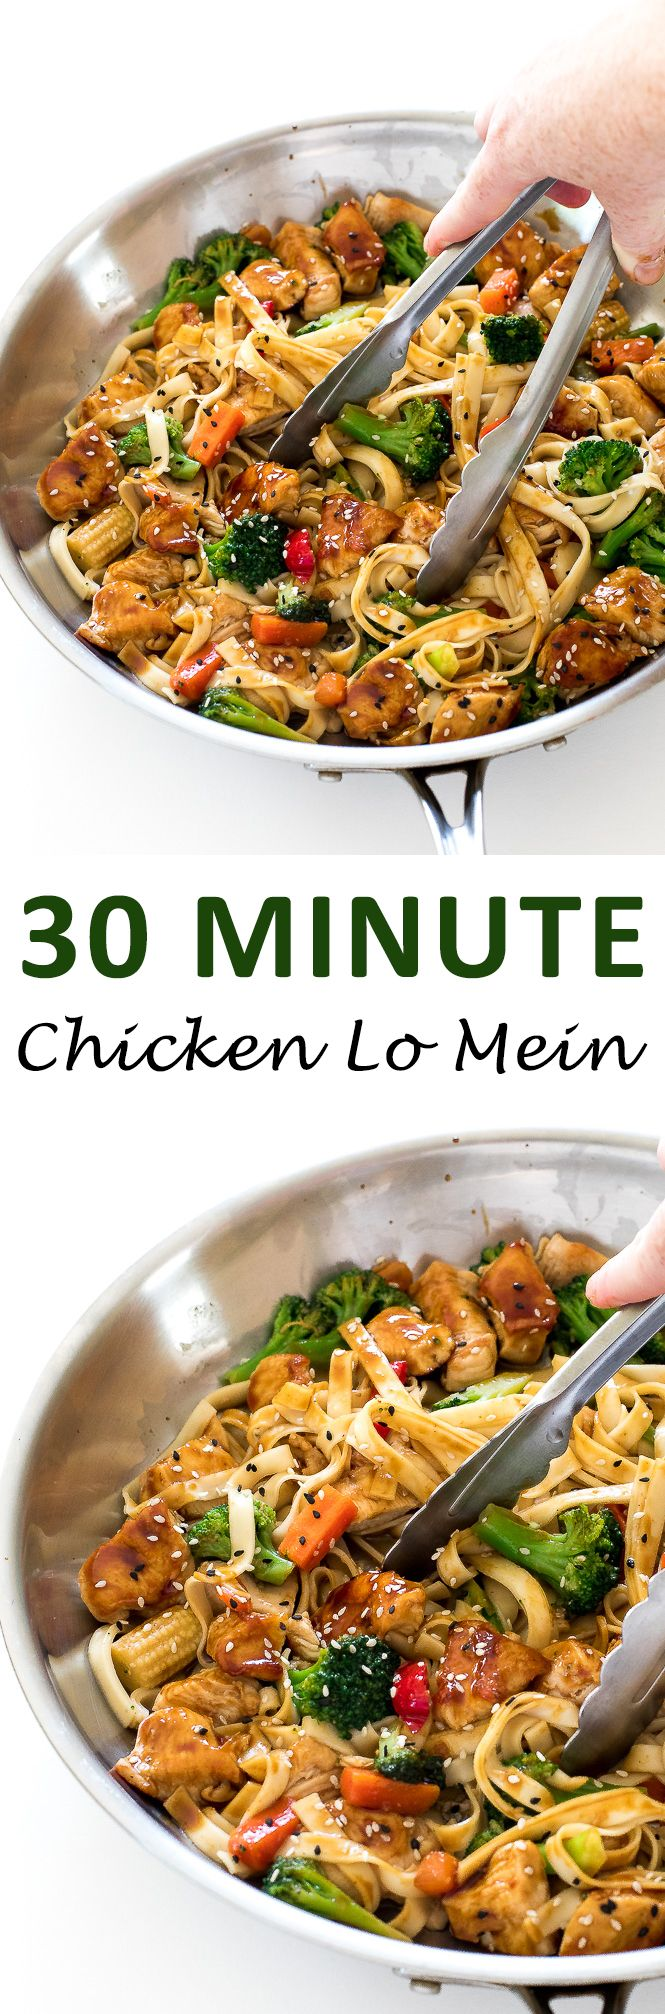 Chicken Lo Mein. Ready in under 30 minutes and tastes way better and is healthier that takeout! | chefsavvy.com #recipe #chicken #dinner #lo #mein